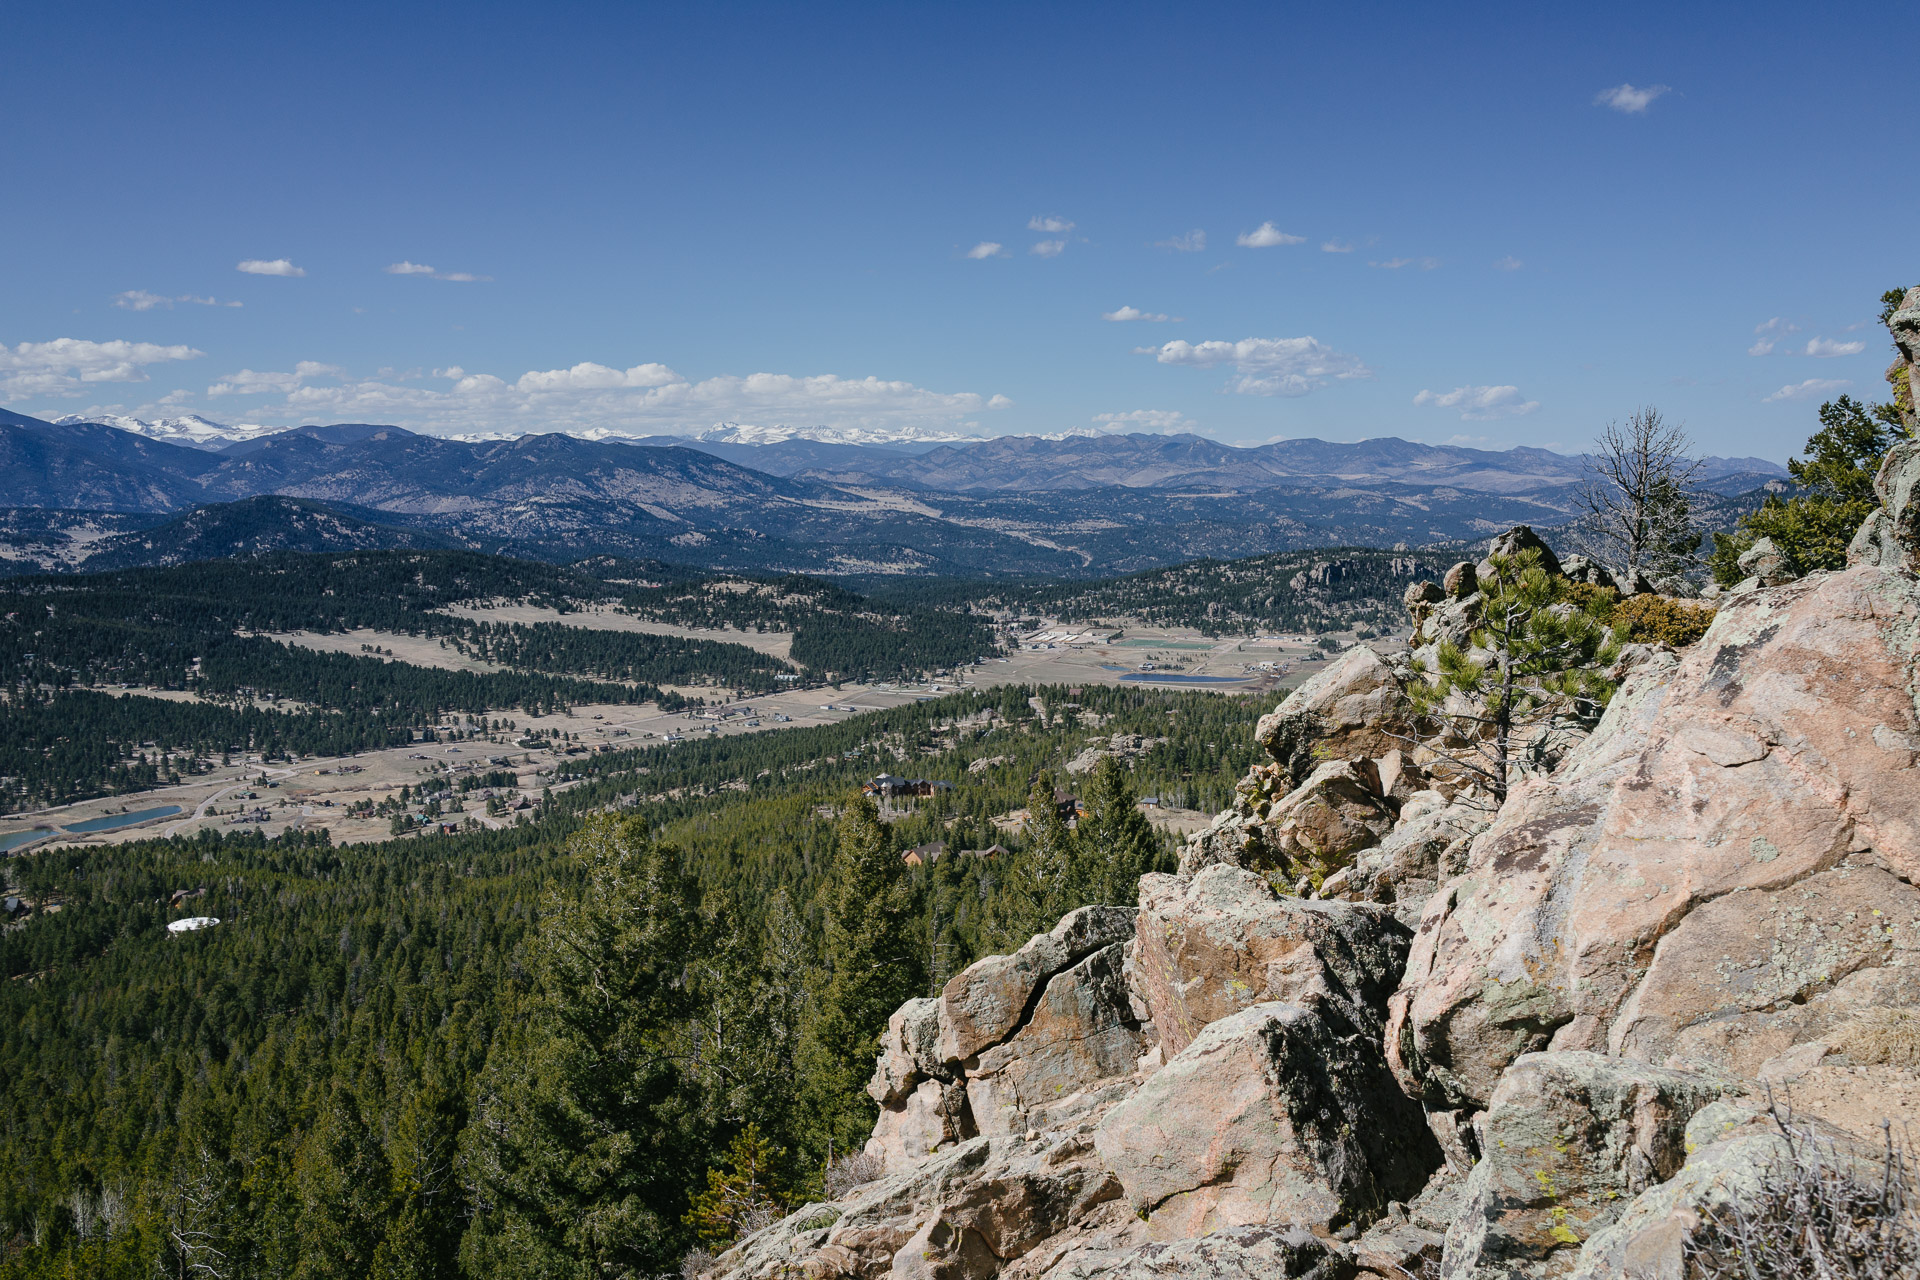 The view north from the top of Berrian Mountain in Conifer, Colorado. March, 2015.